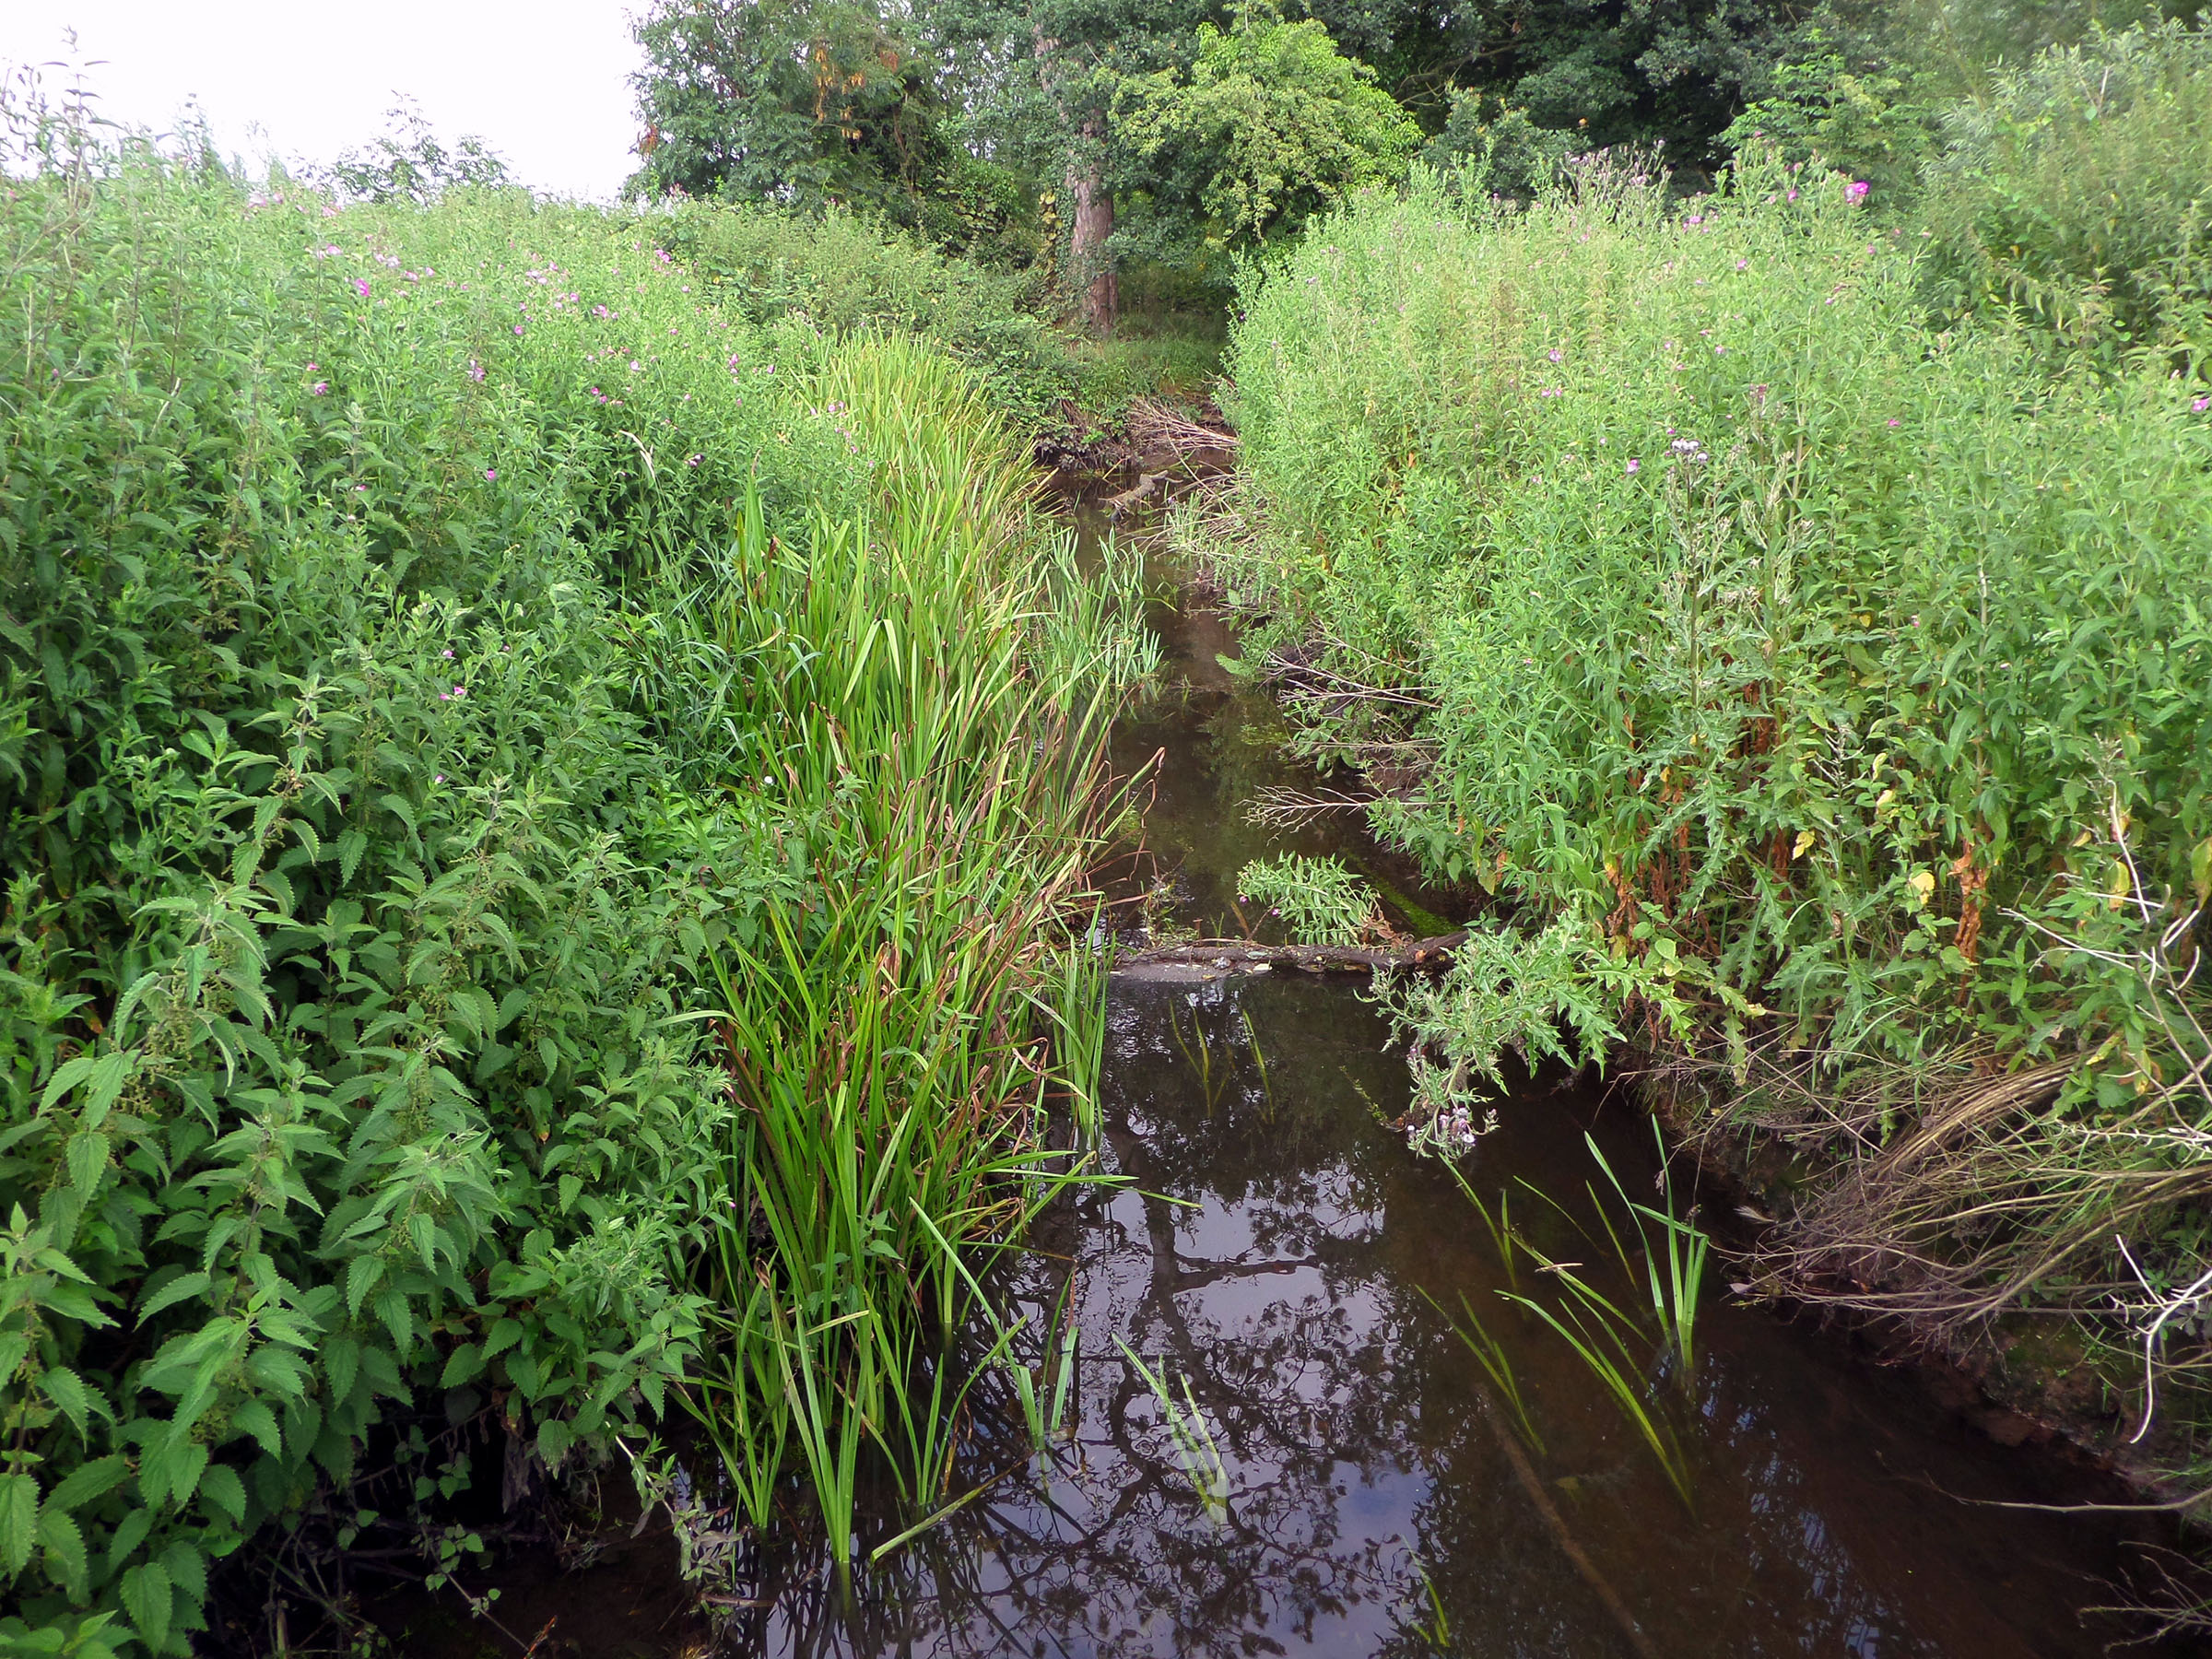 Bourne park reed beds photo